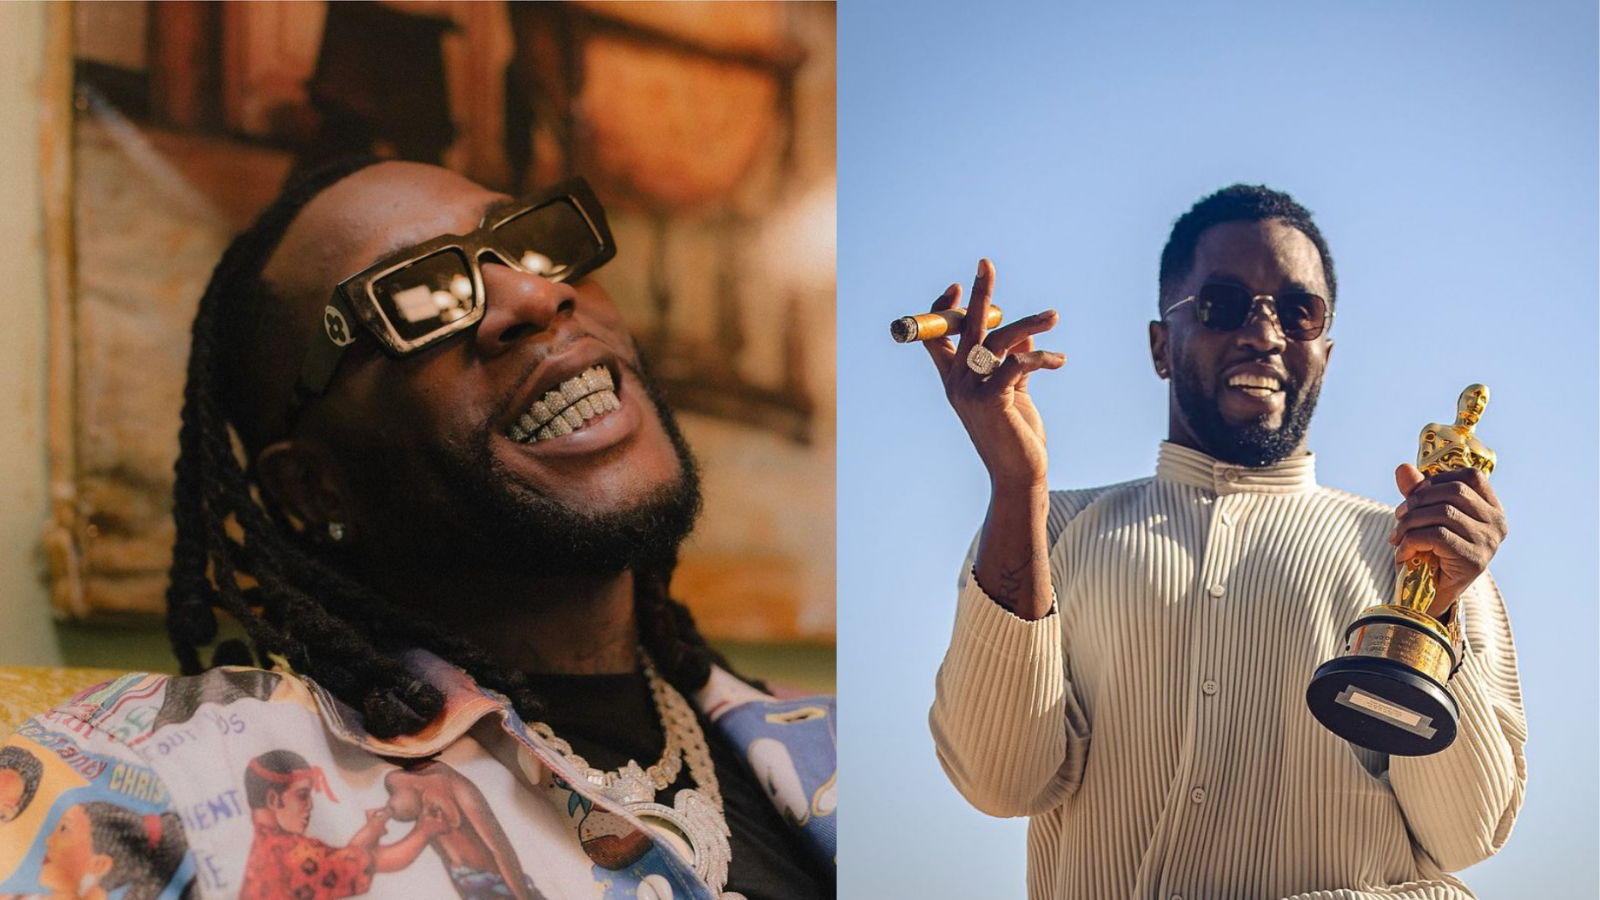 Burna Boy reunites with Diddy after Grammy win